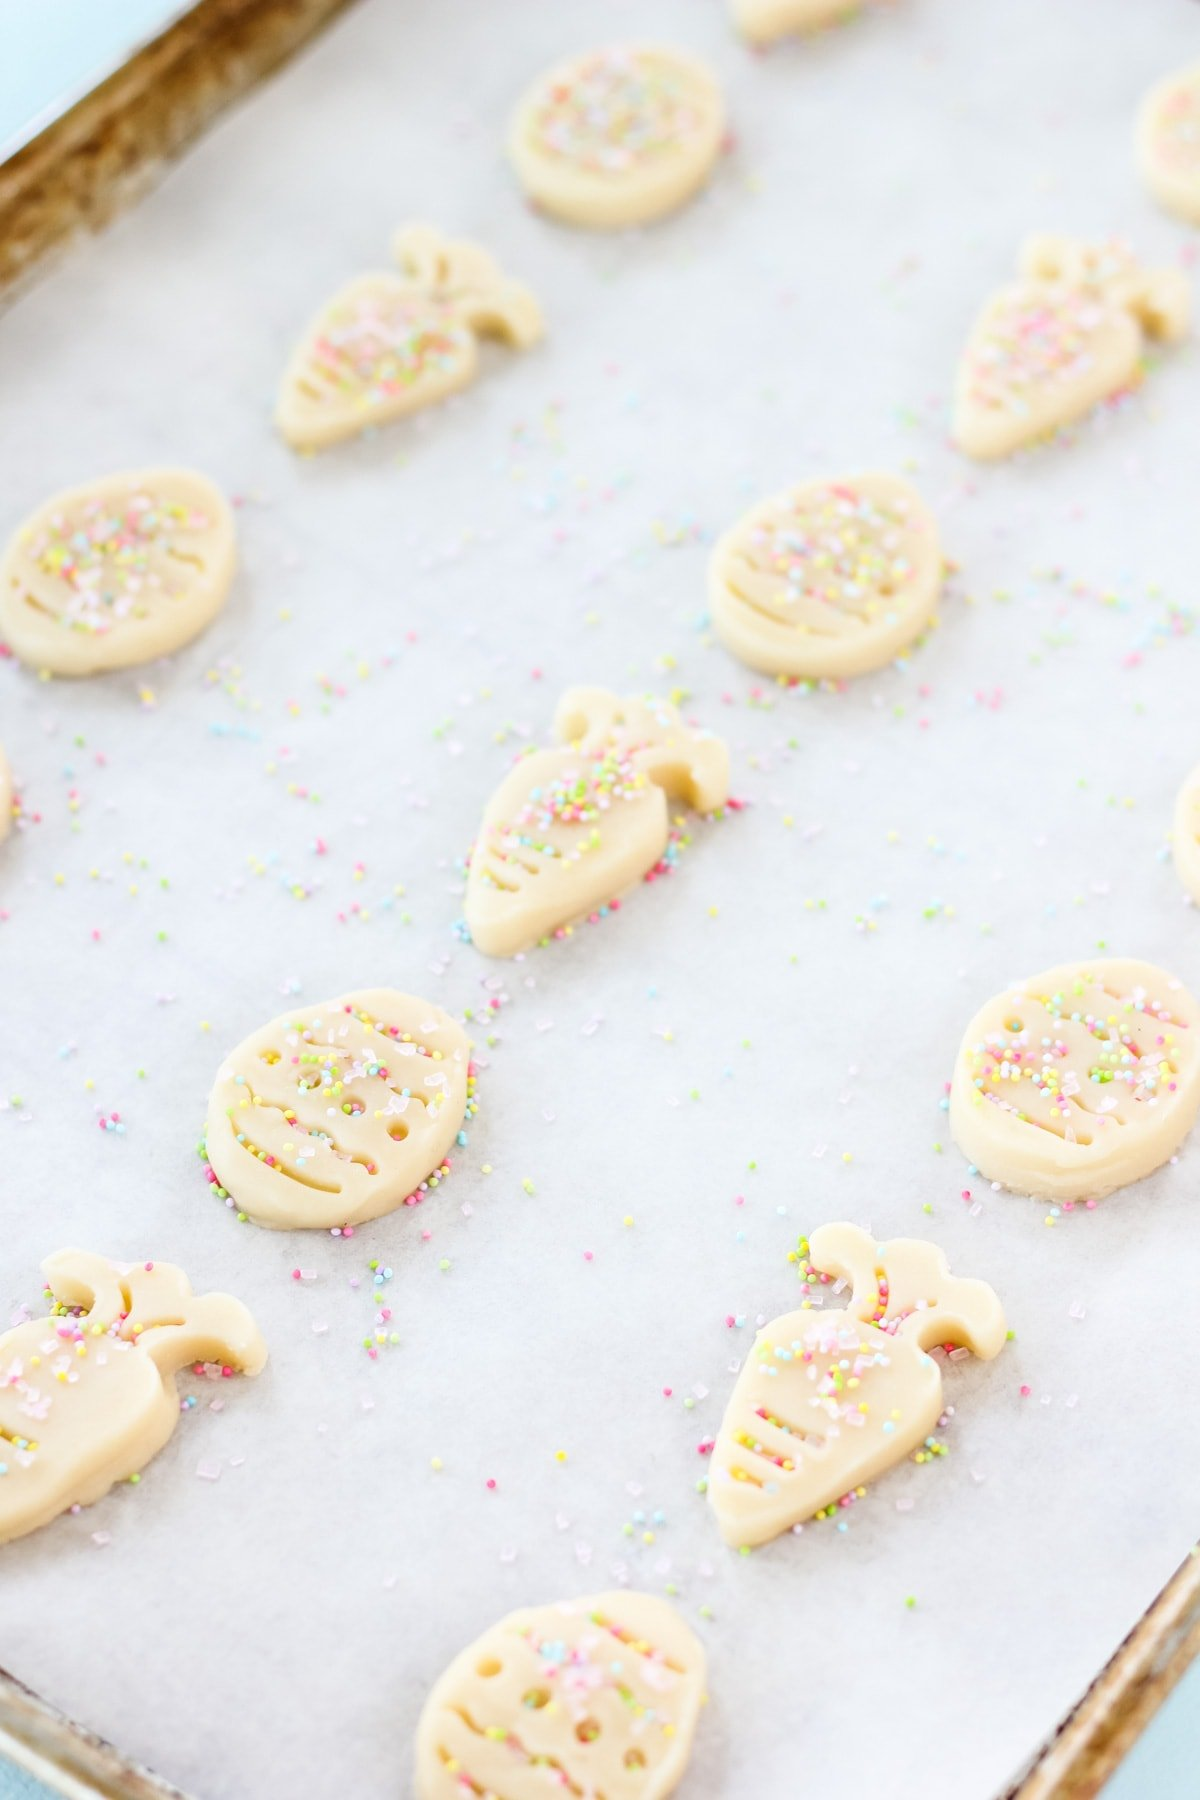 an image of a cookie sheet lined in parchment paper. on the sheet are raw cookie dough cut outs in the shapes of carrots and Easter eggs which are covered lightly in sprinkles